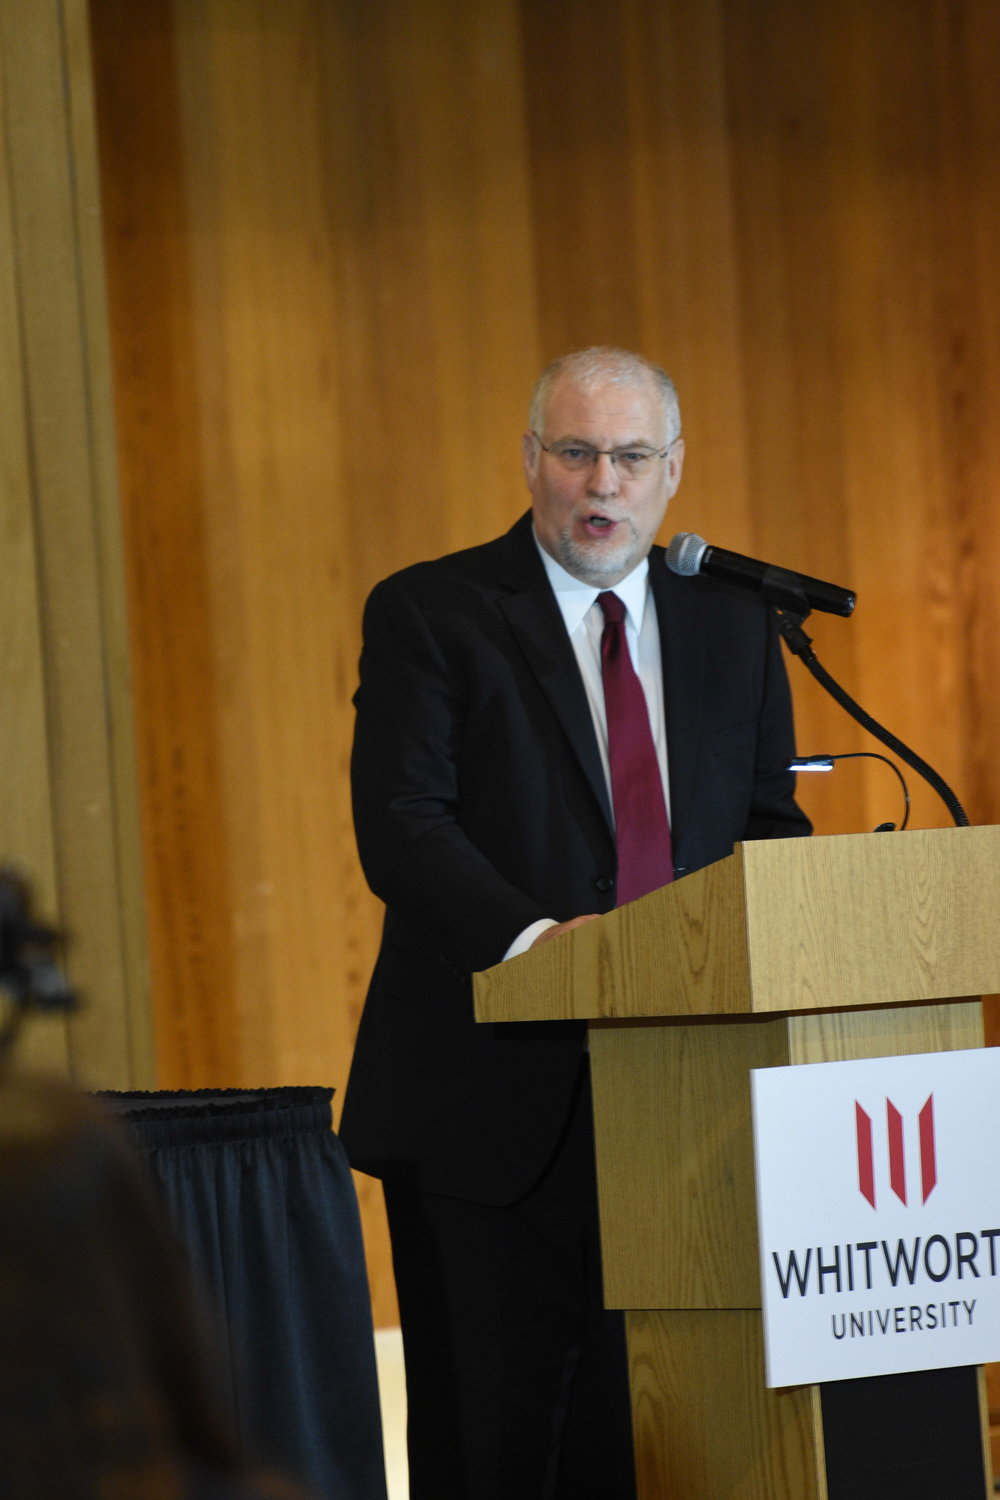 Communications professor Mike Ingram discusses the need for polite civil discourse on both sides of the political spectrum, liberal and conservative, at the President's Colloquy on Civil Discourse, April 16.